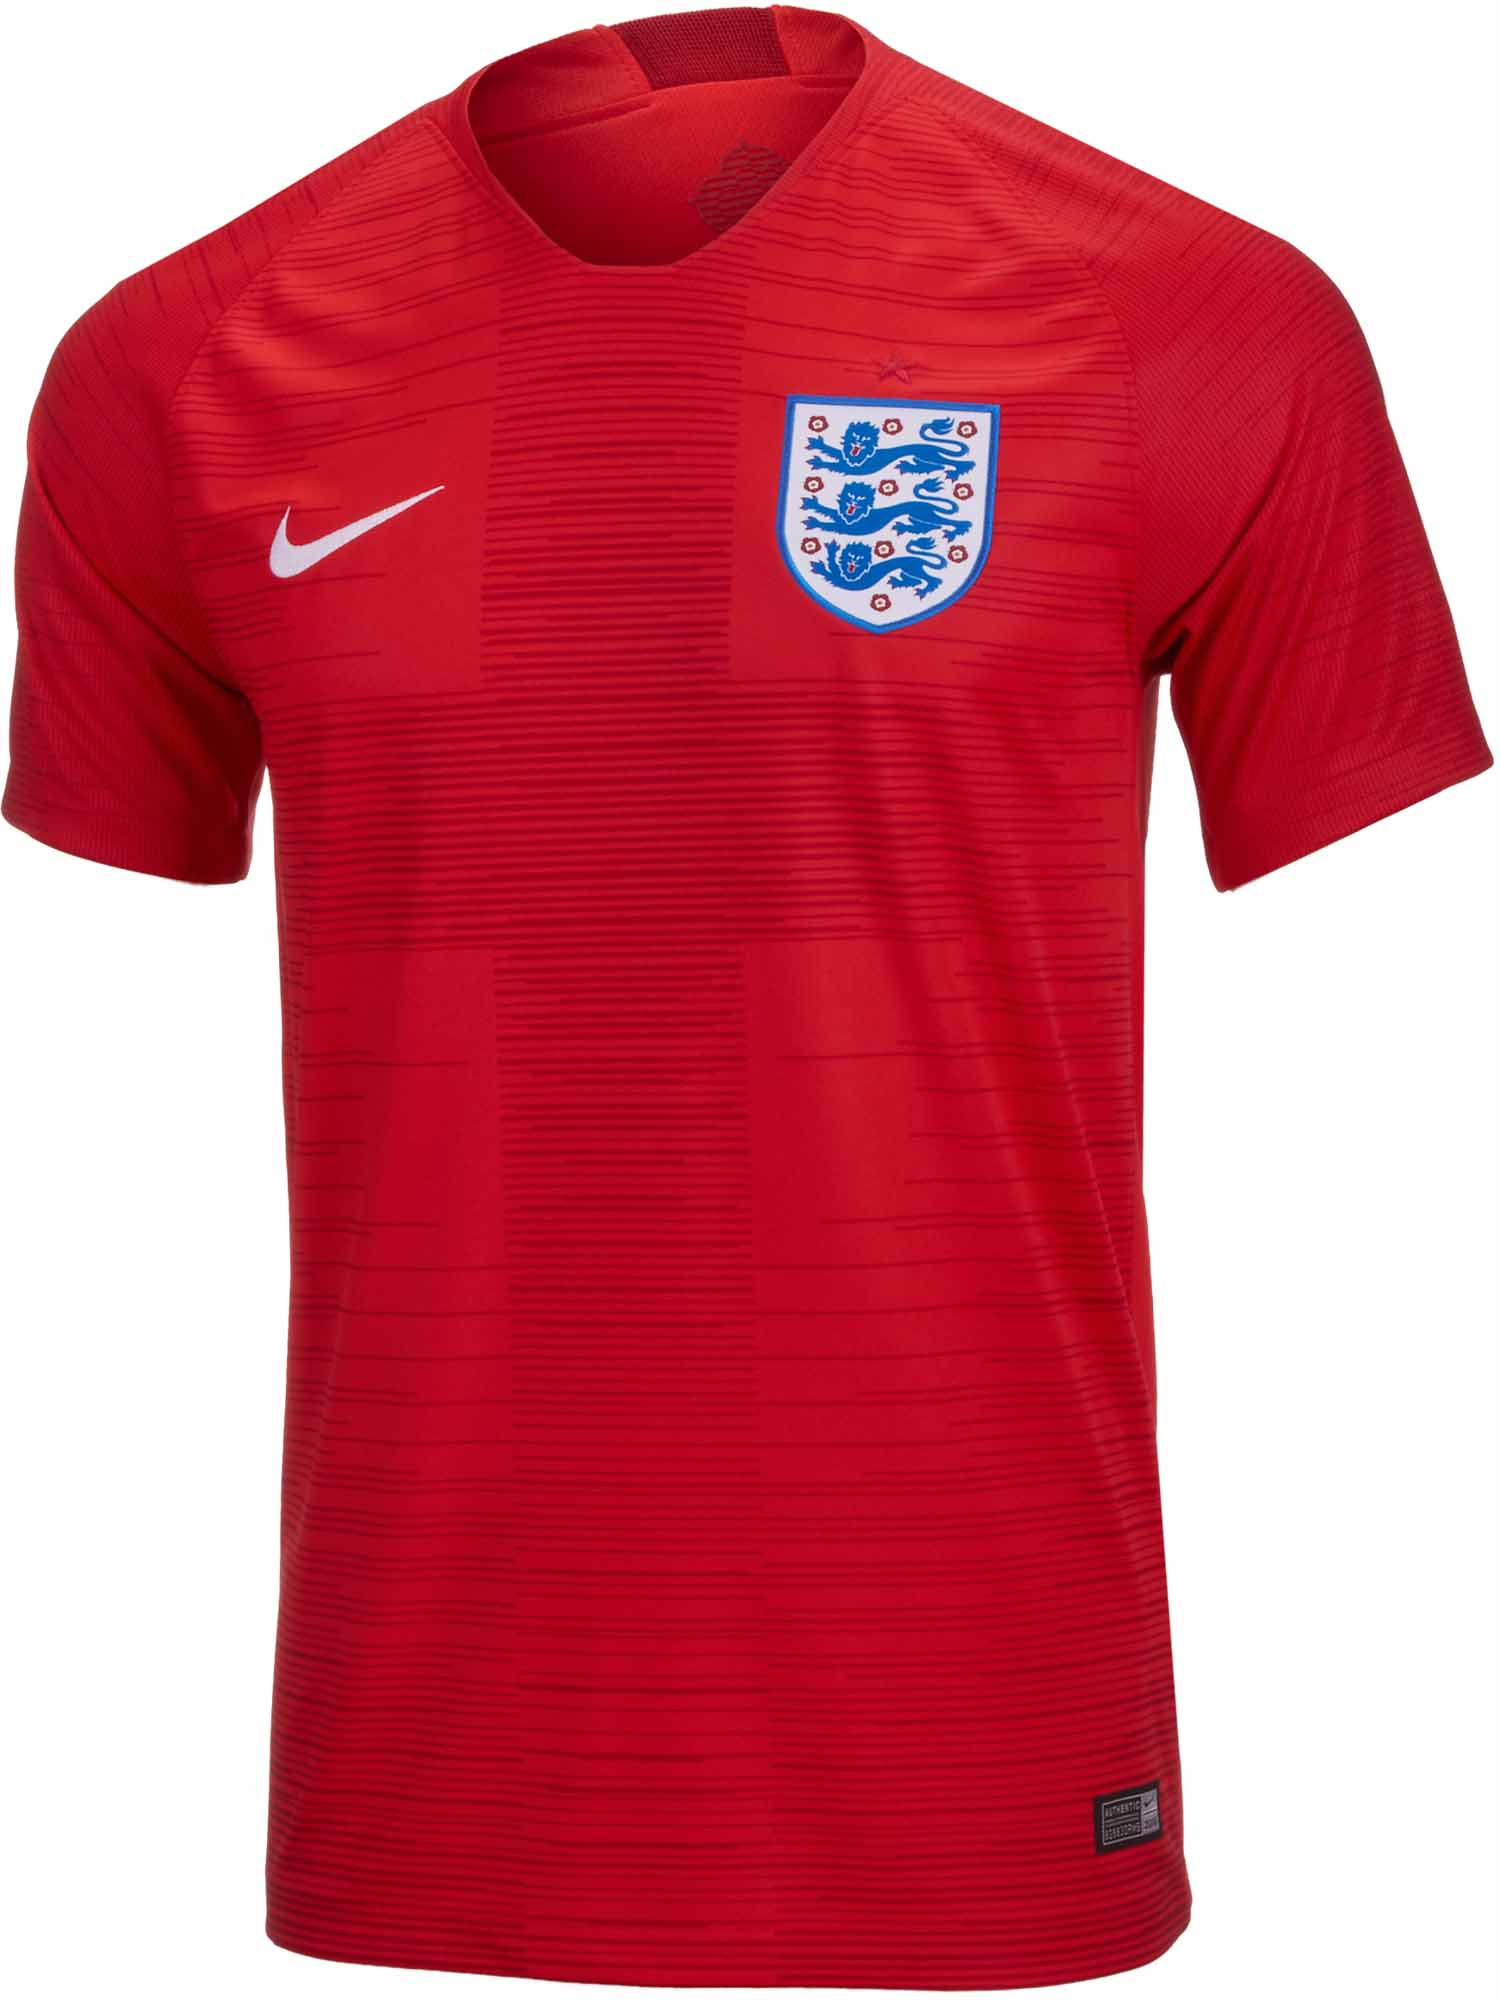 huge discount cd657 0f8d1 greece england 10 dele away soccer country jersey e9da0 578f5